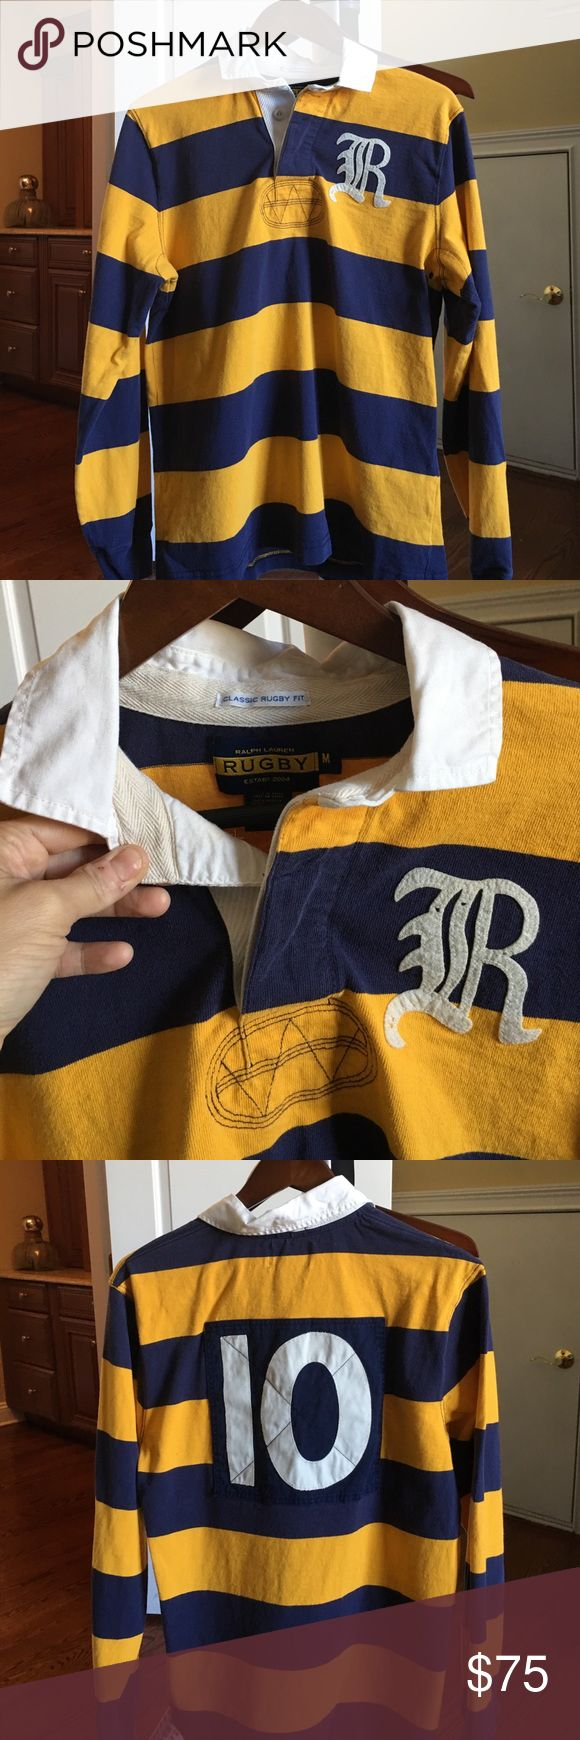 Men's long sleeve Rugby by Ralph Lauren polo Men's long sleeve polo shirt by rugby by Ralph Lauren. This shirt was only worn once . Is in excellent condition! Ralph Lauren Shirts Polos